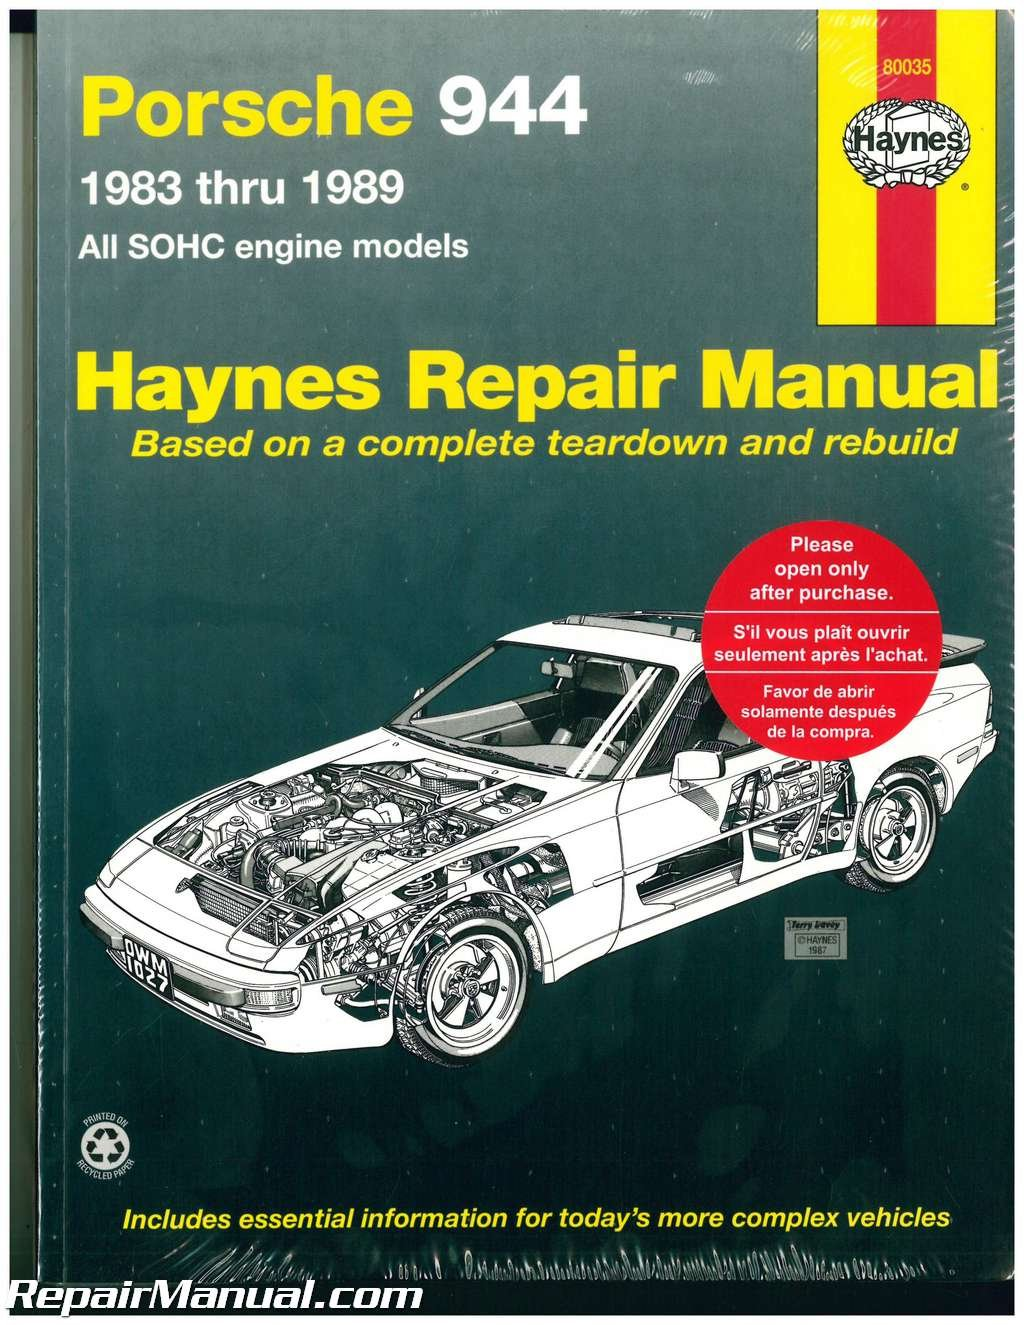 h80035 haynes porsche 944 1983 1989 auto repair manual manufacturer rh amazon com 1987 Porsche 944 Owner's Manual Porsche 944 Head Gasket